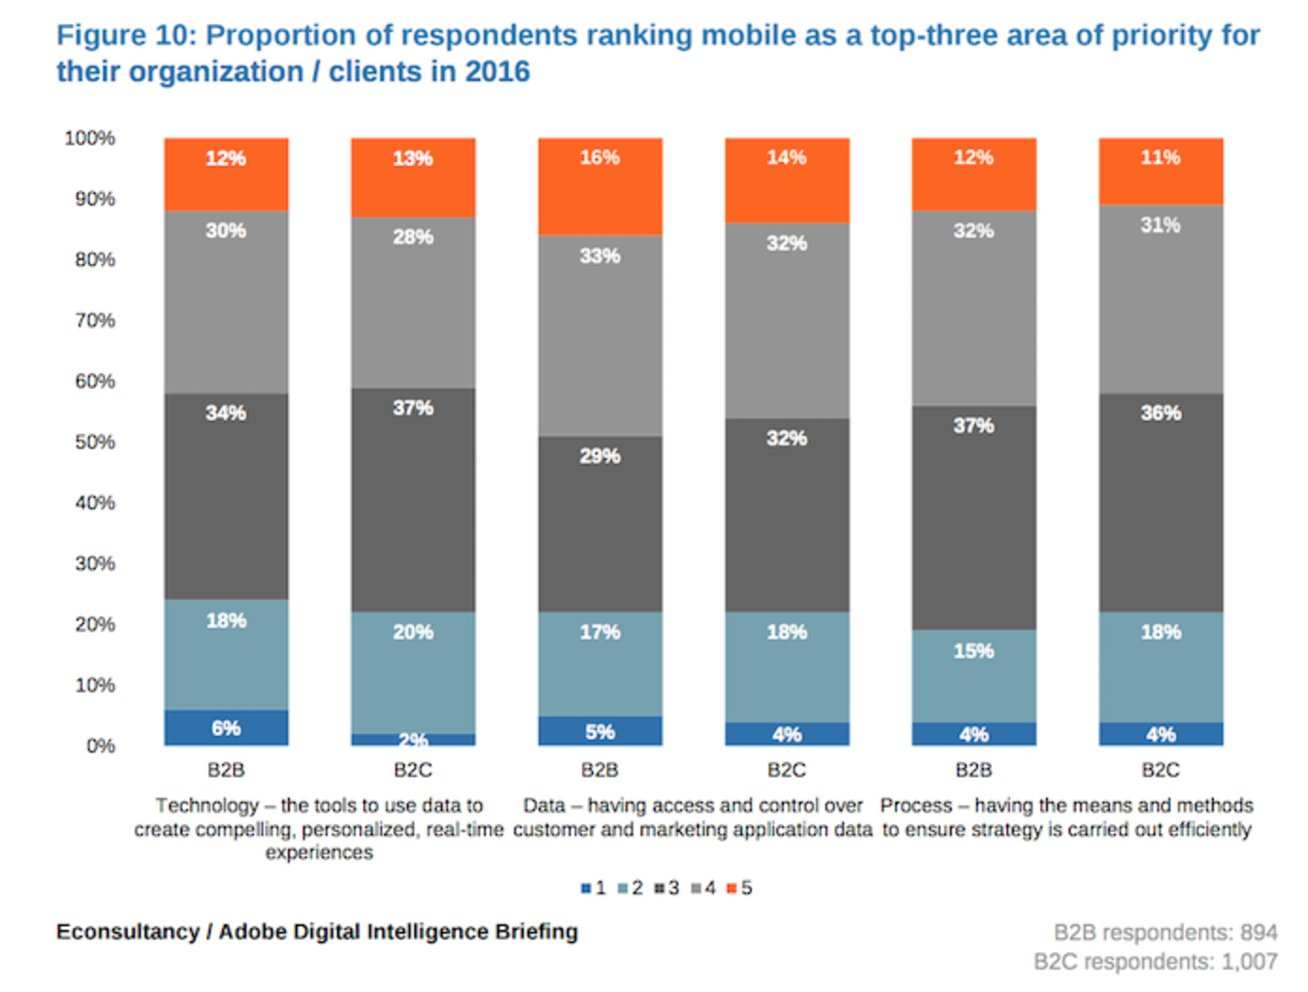 Everything is going #mobile but for 61% of B2B respondents mobile doesn't crack their top 3 priorities @Econsultancy https://t.co/rvjmNoNLUc https://t.co/fdfAQnAjFw